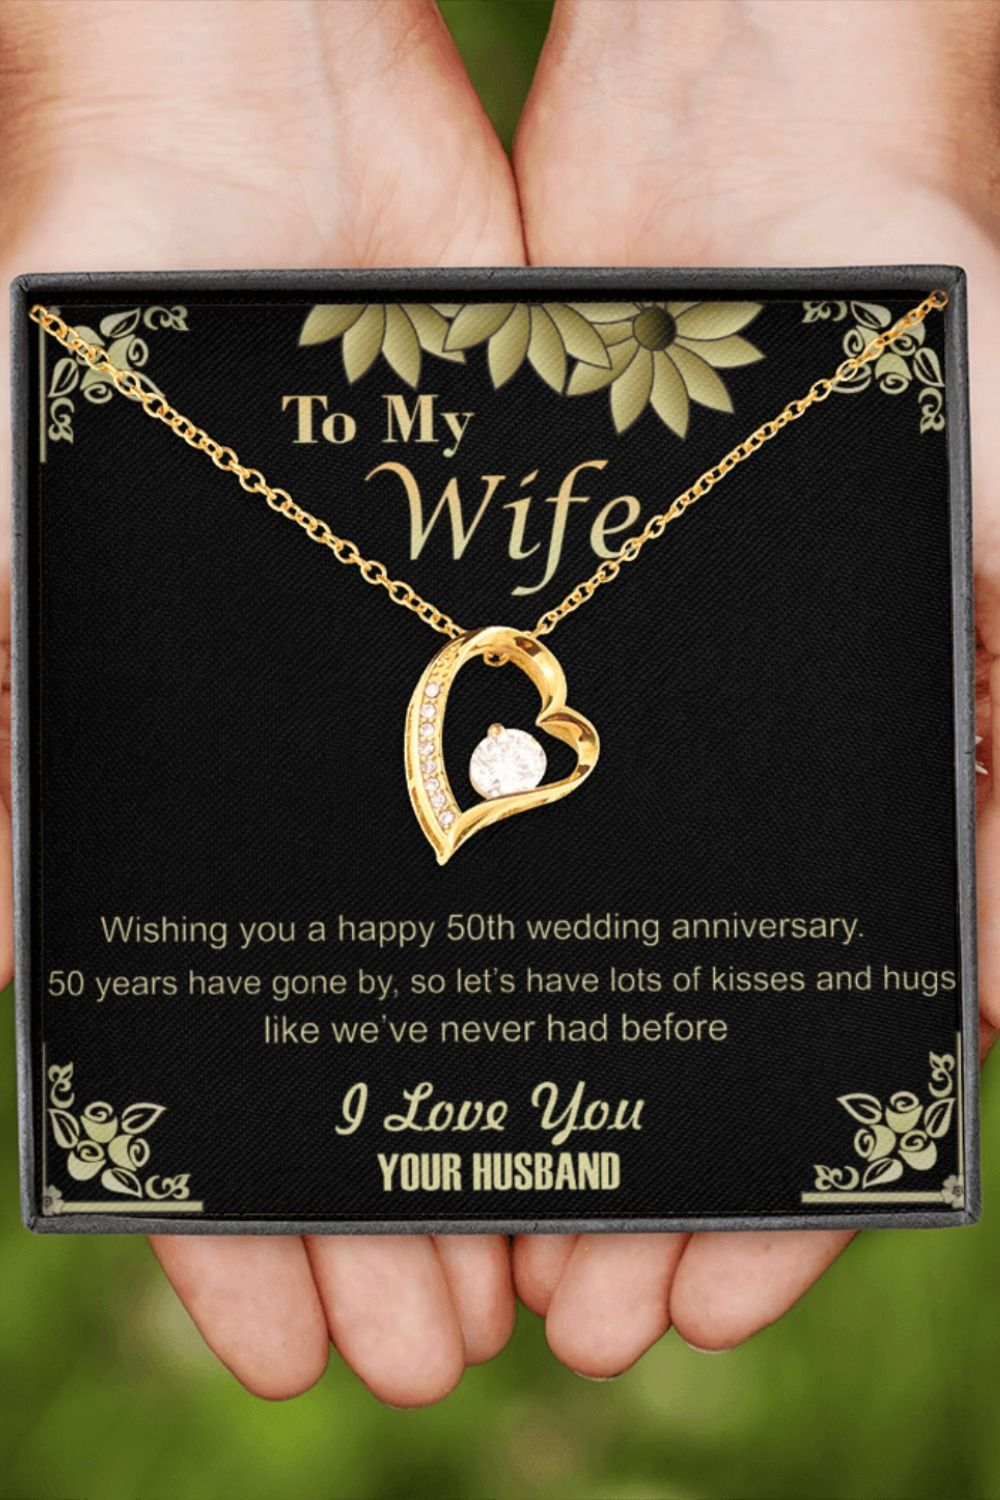 50th Golden Wedding Anniversary Pendant Necklace Gift For Wife Her Gold Present Jewelry Ideas In 2020 50th Wedding Anniversary Wishes Golden Wedding Anniversary Anniversary Jewelry Gifts